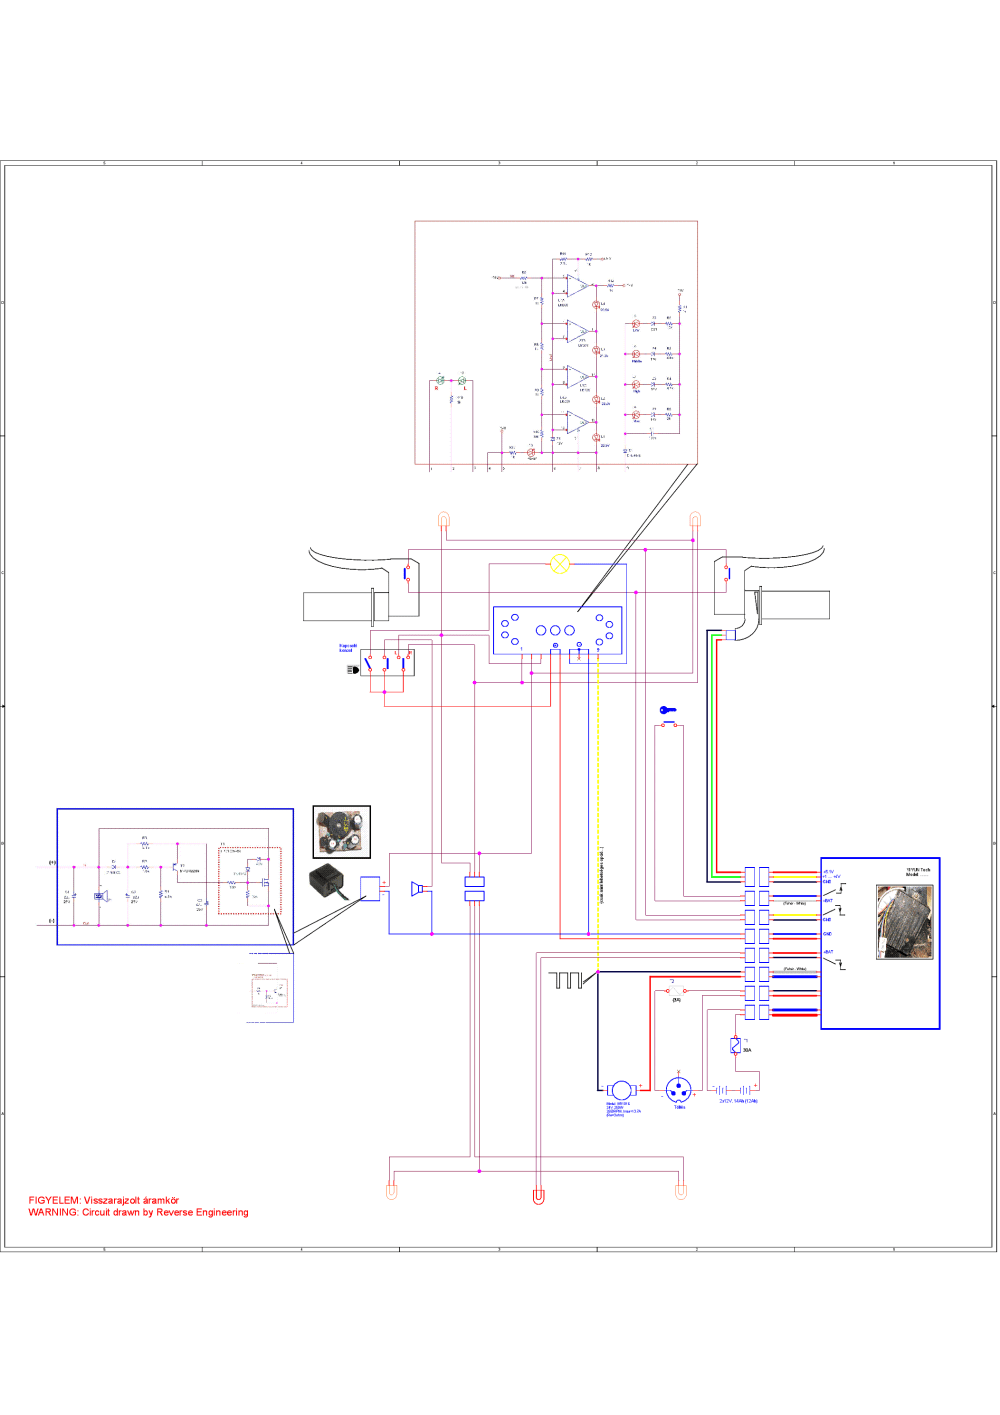 medium resolution of trotico china e scooter wiring diagram repair info service manualtrotico china e scooter wiring diagram repair